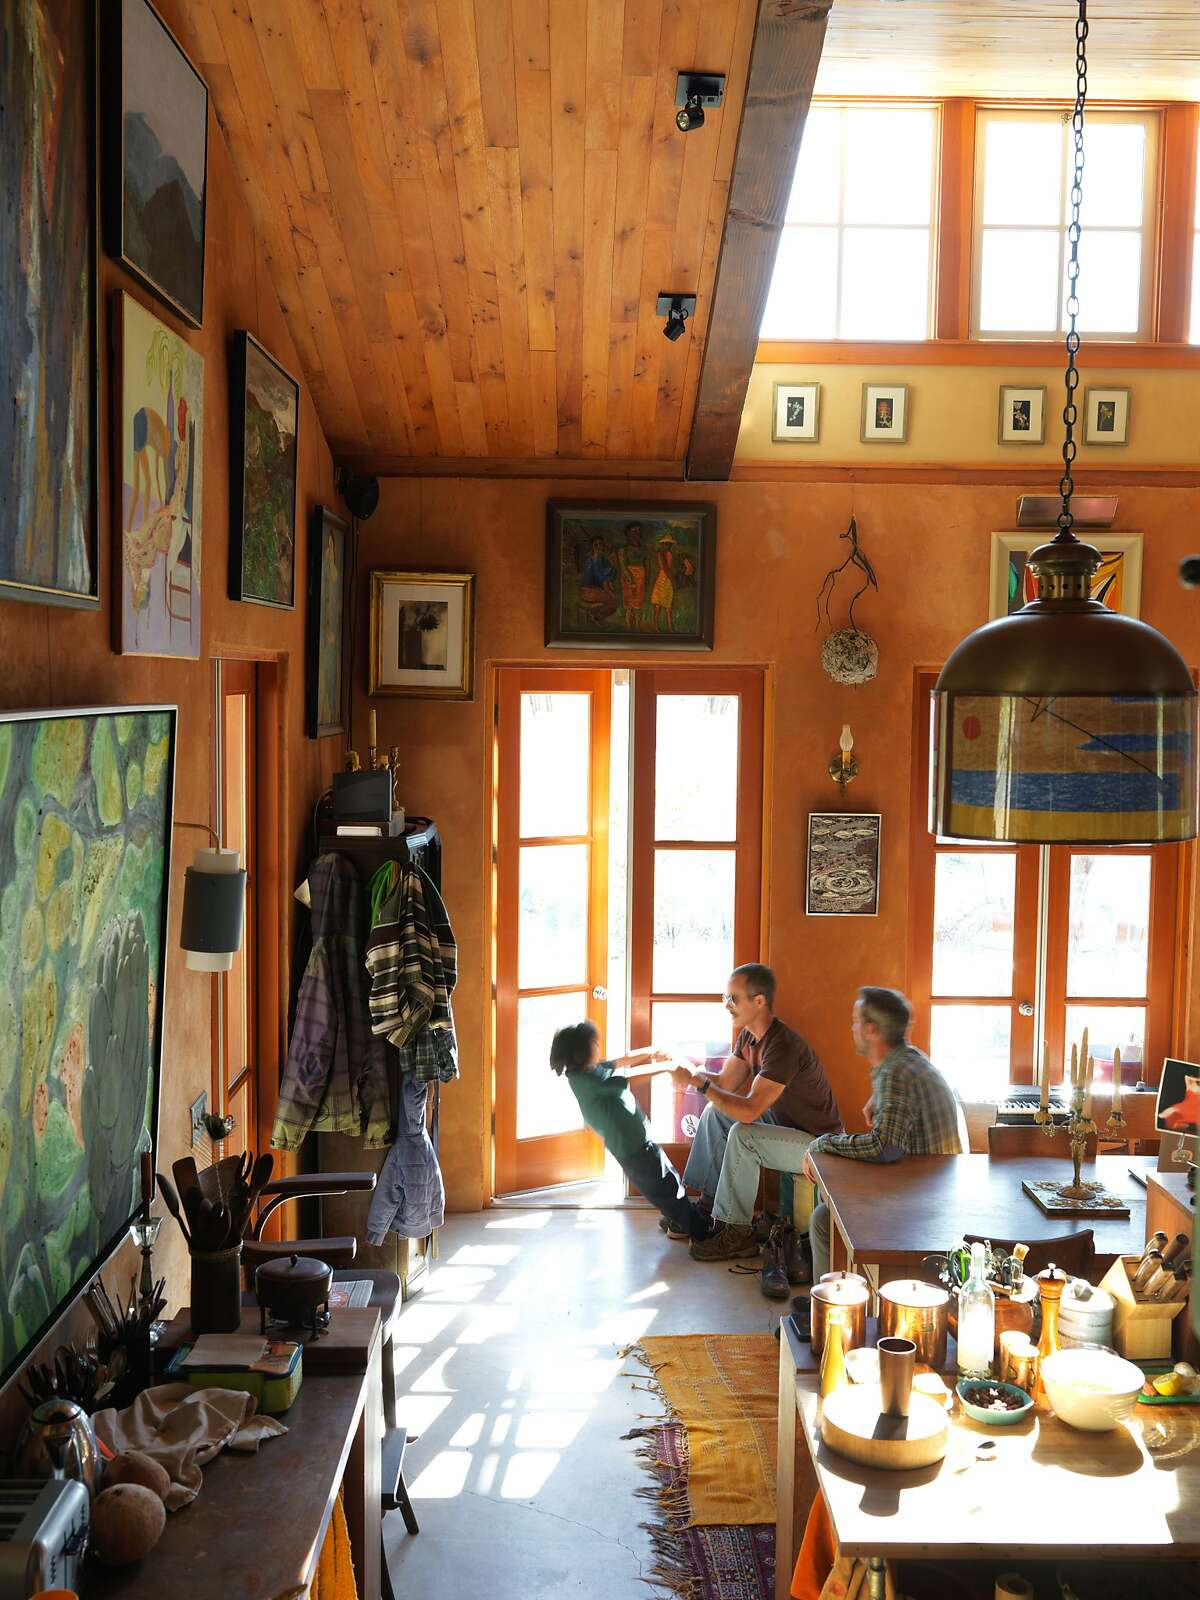 GaŽtan Caron, right, co-owner of Lost Art Salon, and his partner Mario platy with their 6-year-old son Jose Leo inside the great room of their home in the hills outside of Ukiah.